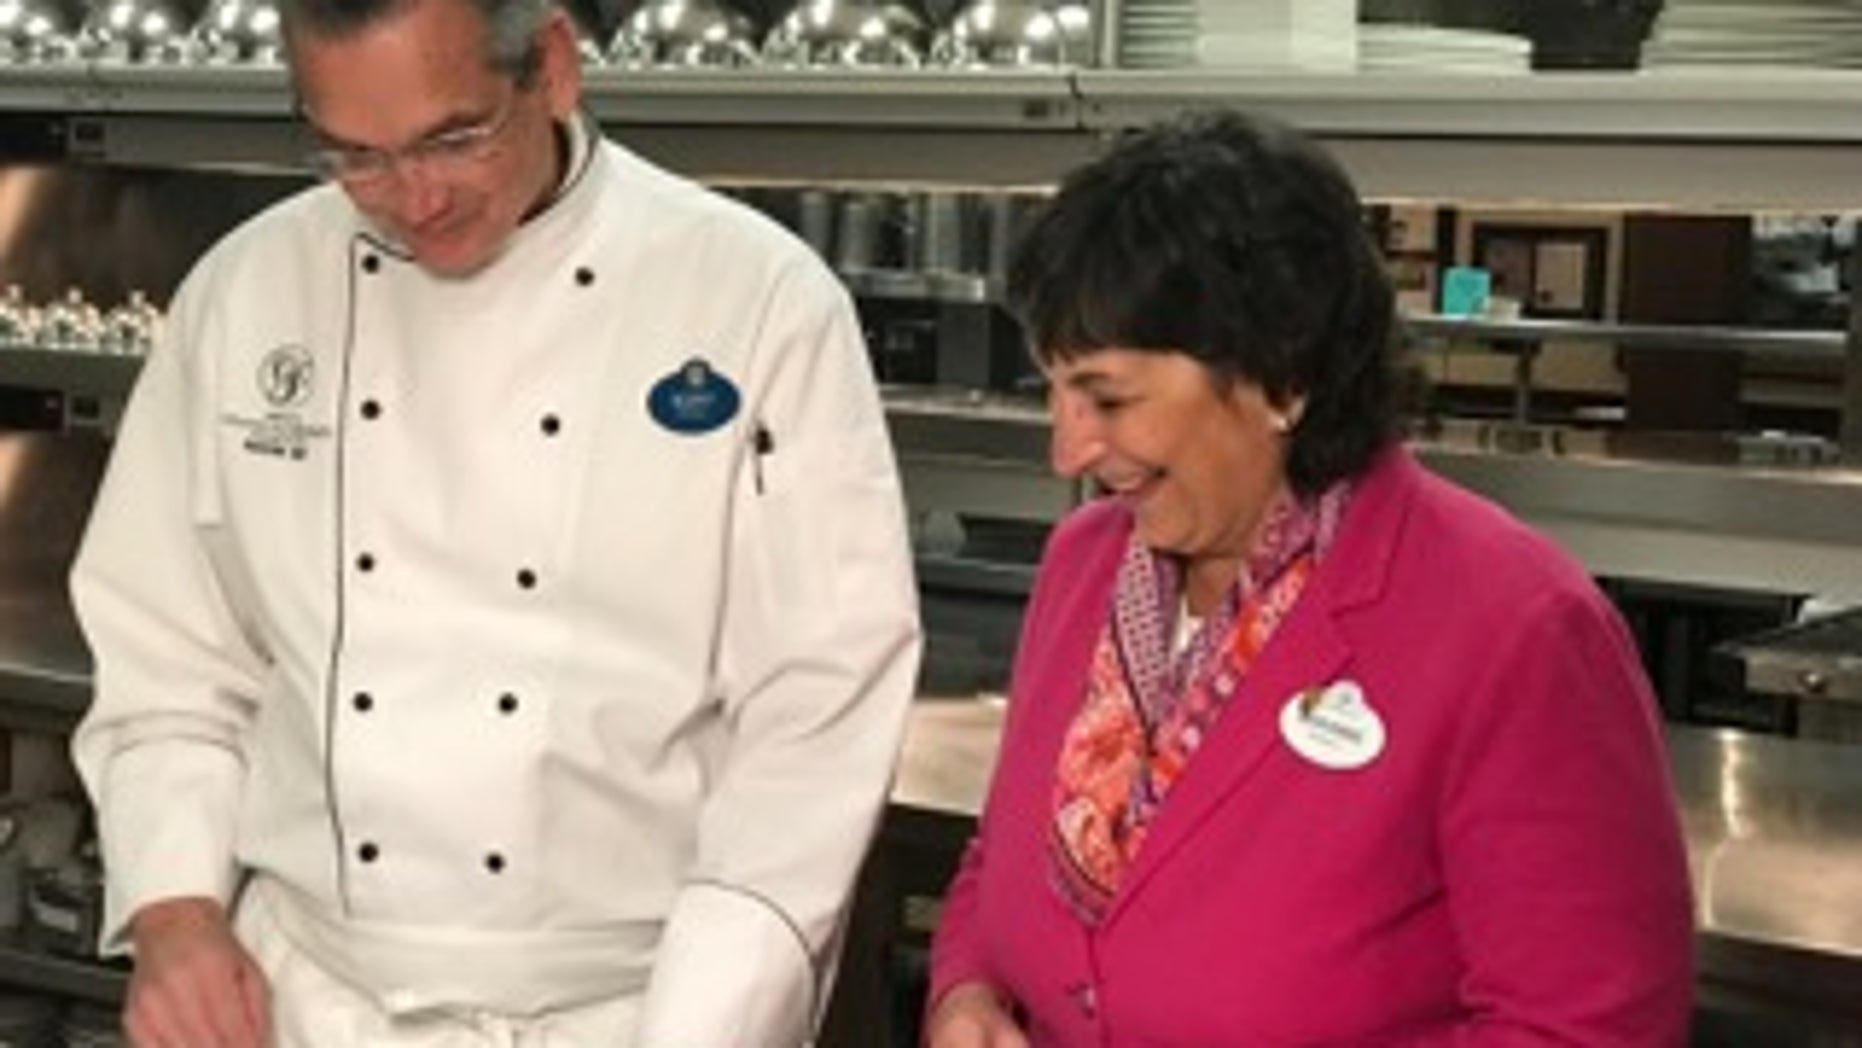 Chefs Scott and Marianne Hunnel have been cooking at Disney properties for decades.